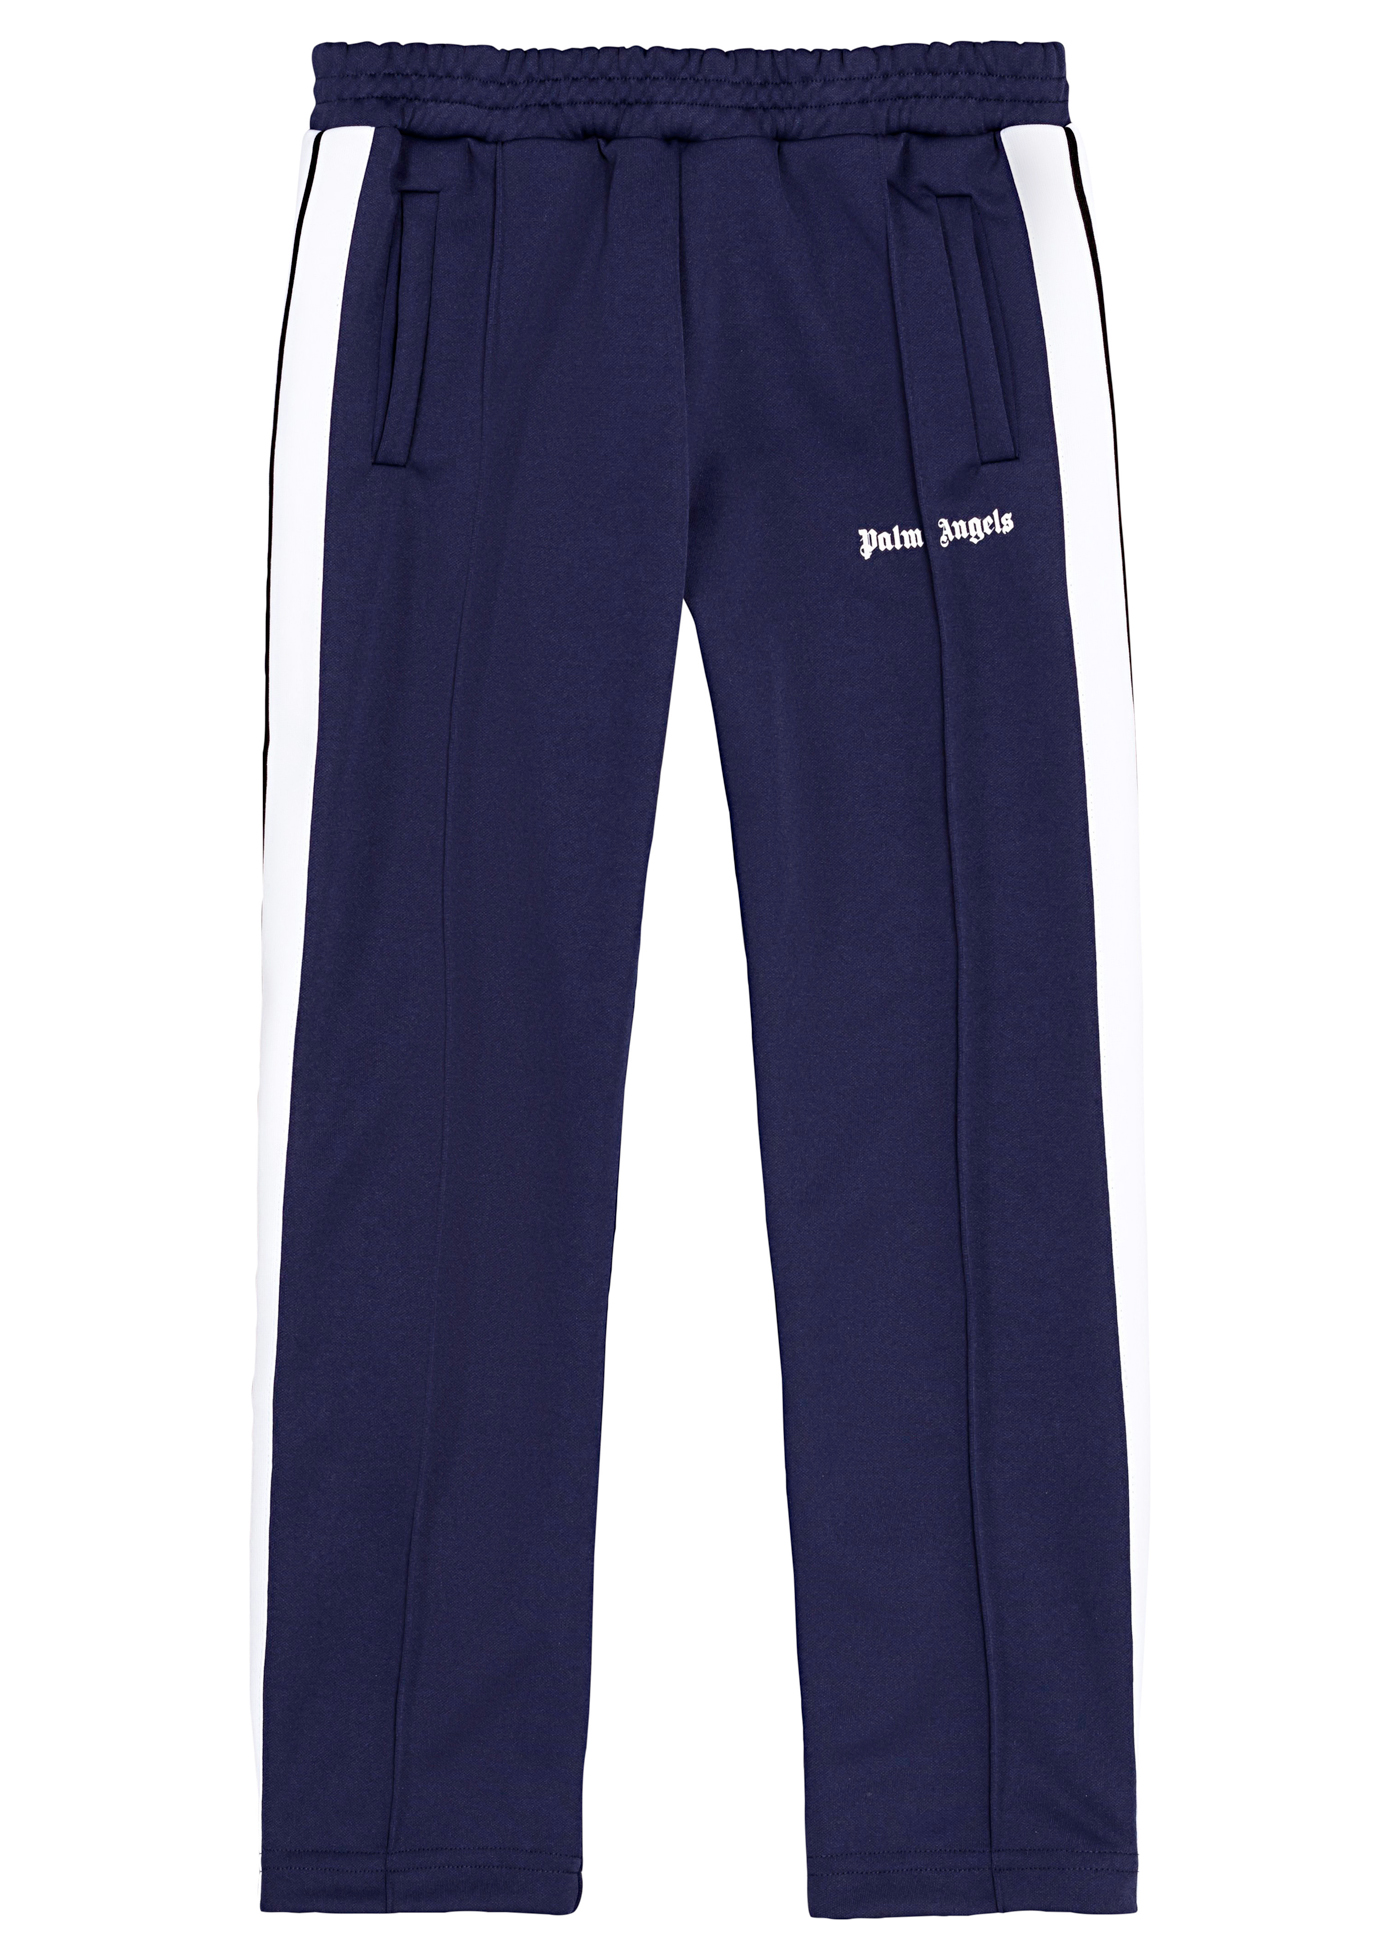 CLASSIC LOGO TRACK PANT image number 0